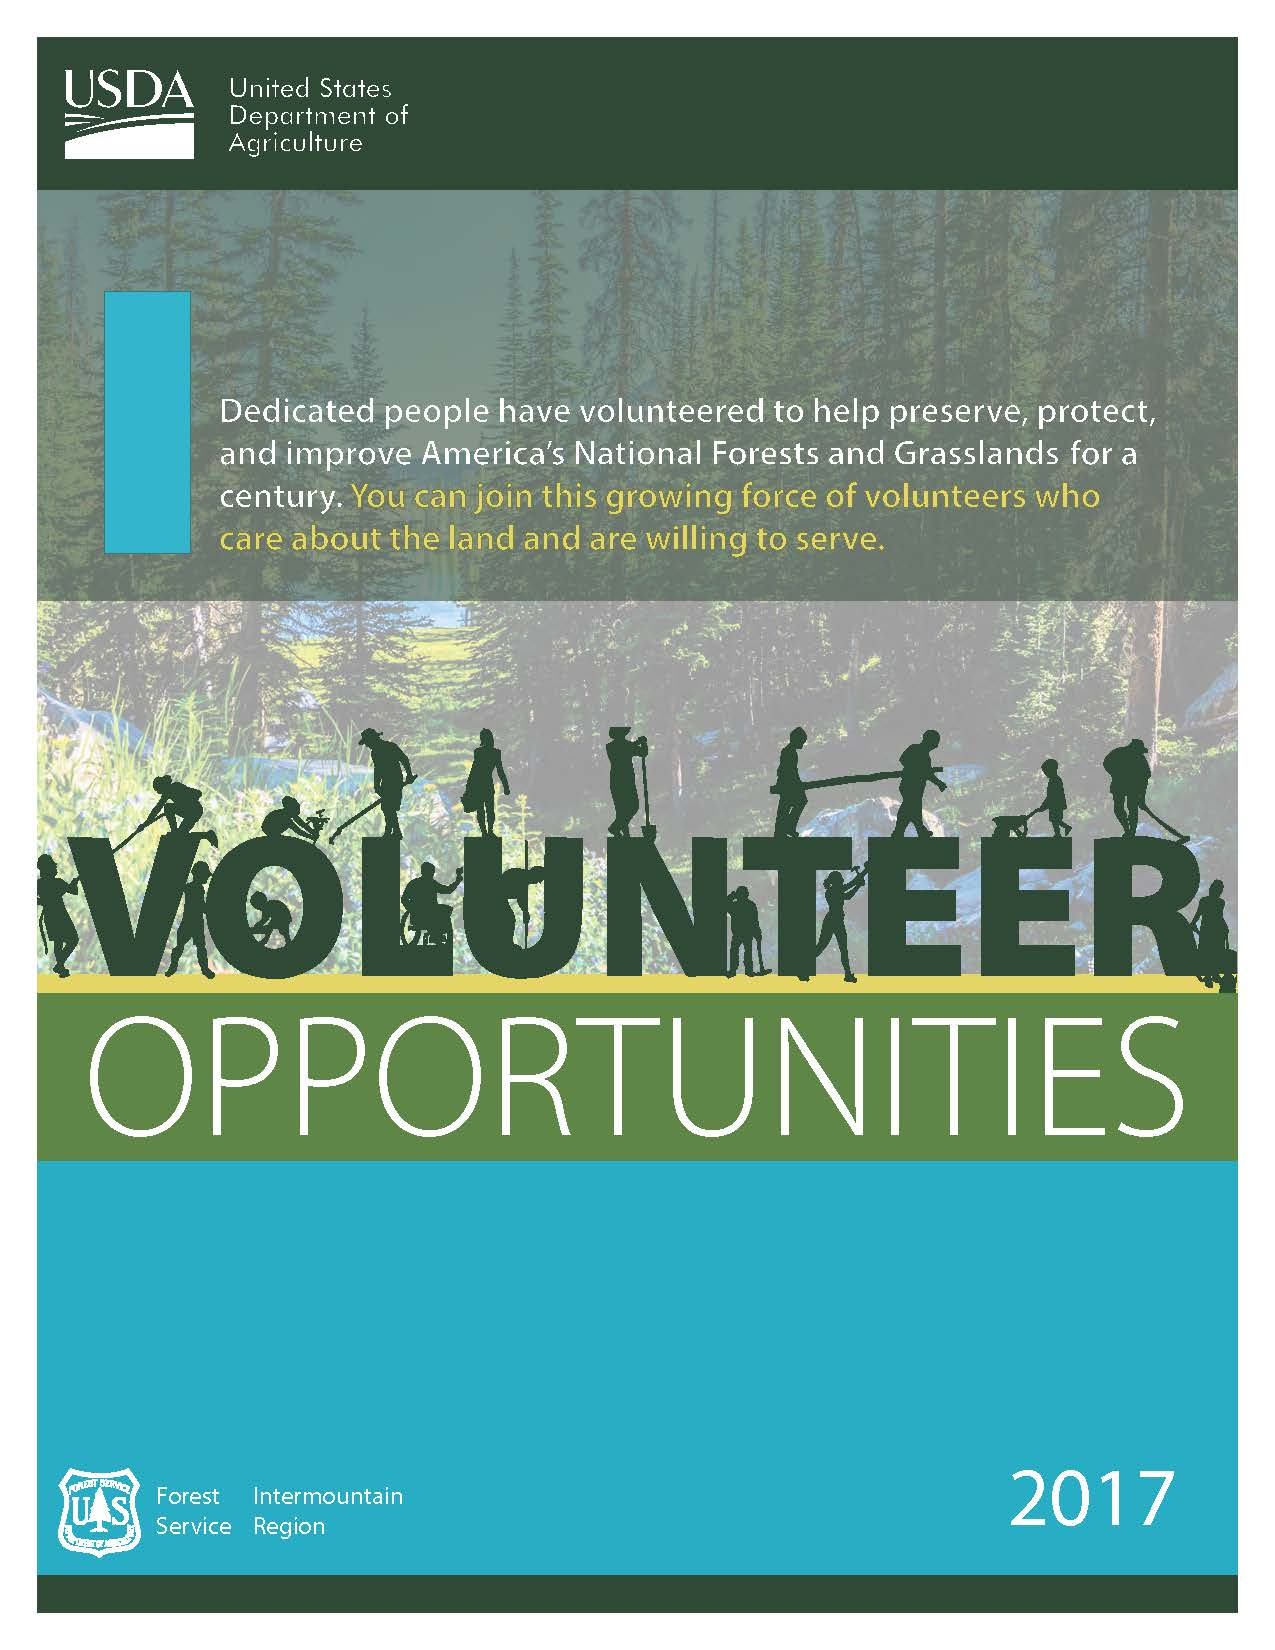 Photo of cover page of 2016 Volunteer book